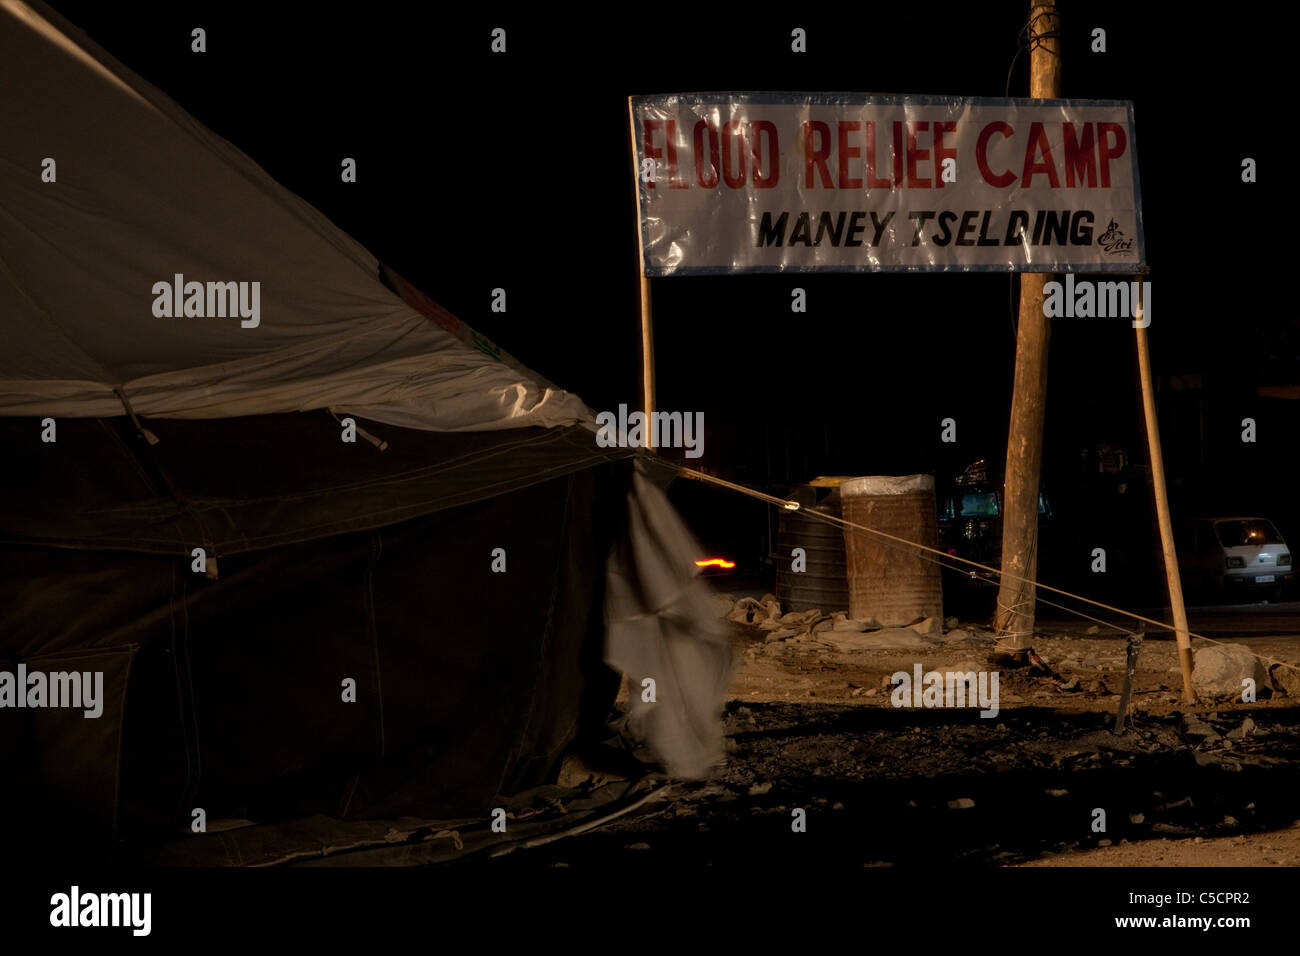 Flood relief camp in Maney-tselding, Leh. - Stock Image